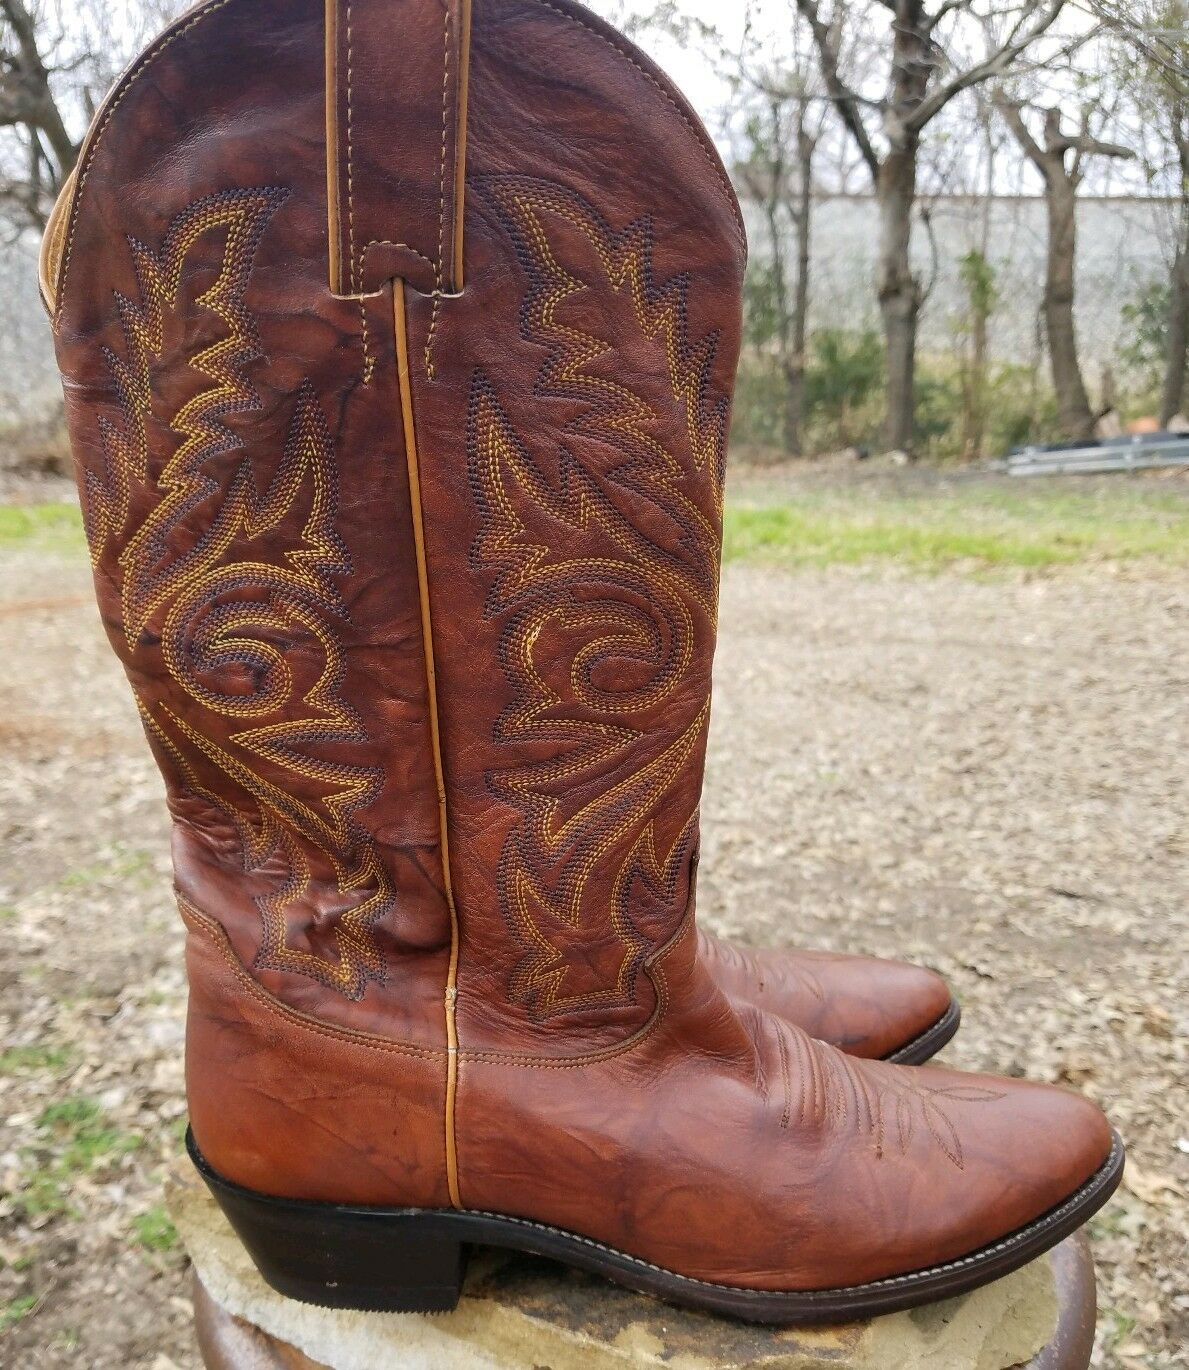 Justin's 1560 Chestnut Leather Pointed Toe Cowboy Western Boots Men's 9.5 D